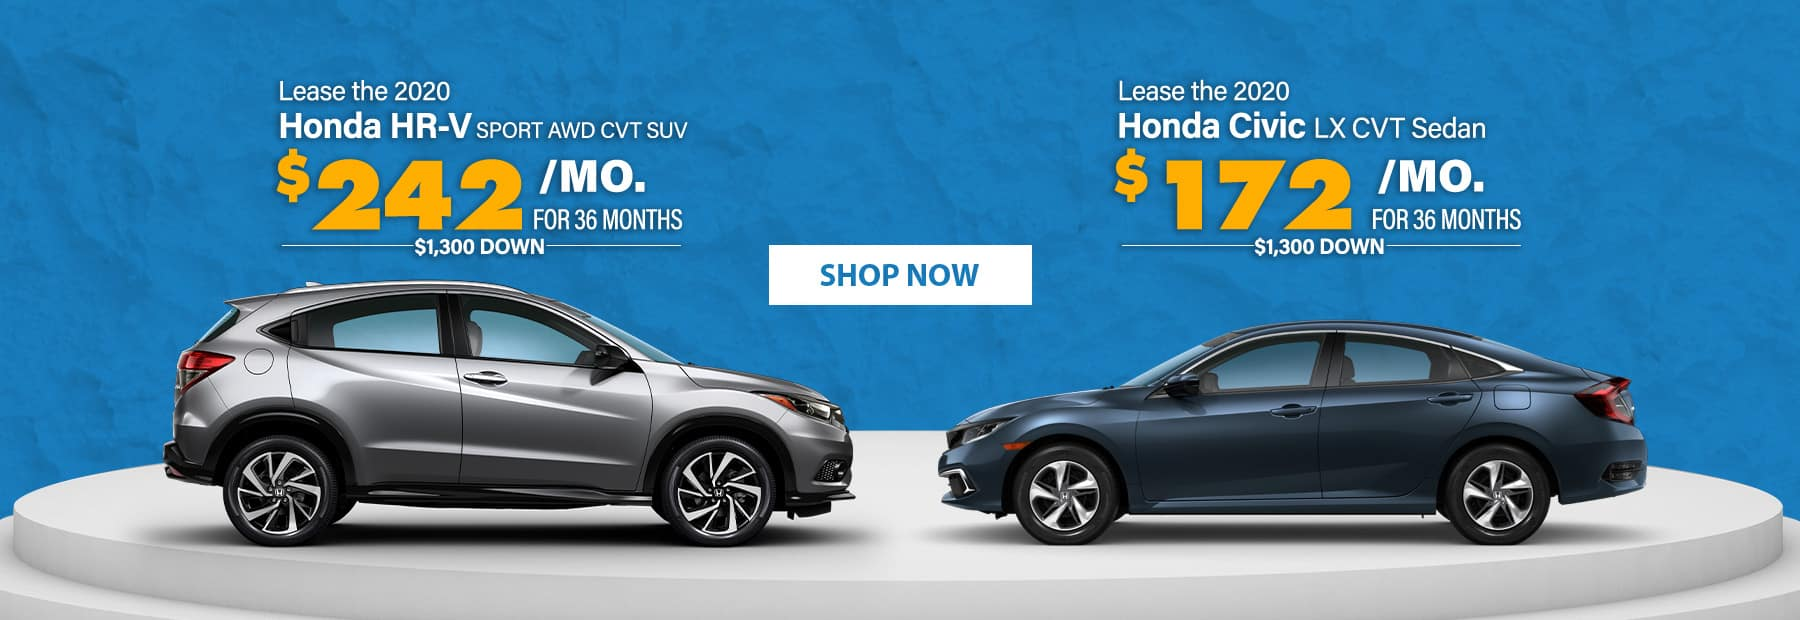 Lease a 2020 Honda HR-V Sport AWD CVT SUV or Lease a 2020 Honda Civic LX CVT Sedan